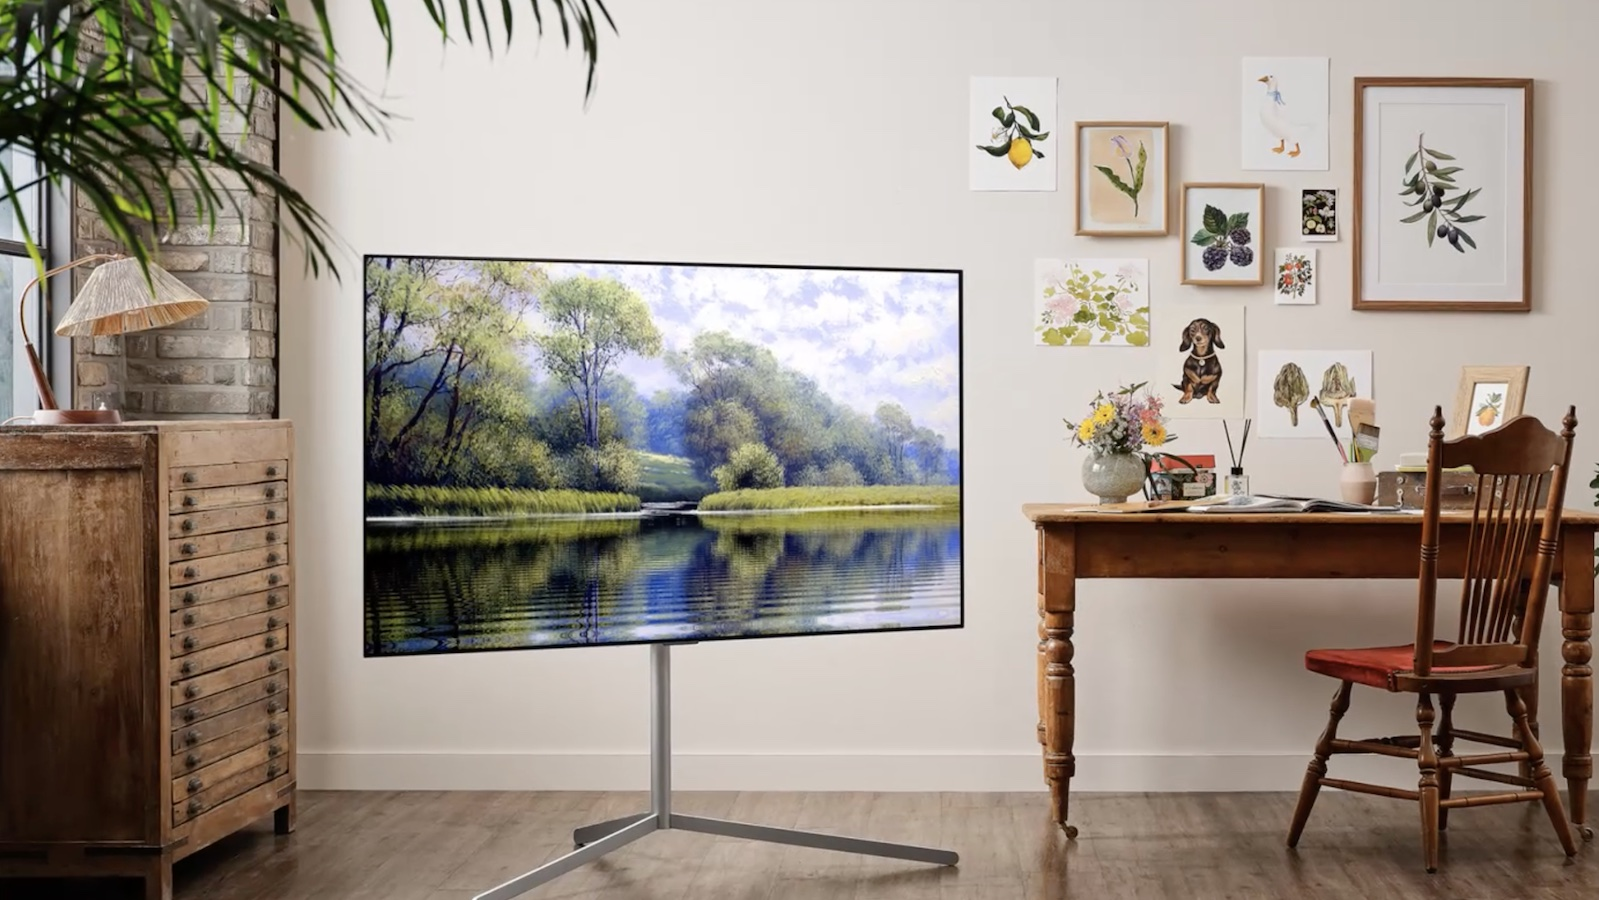 LG G1 Series OLED evo televisions offer purer color and added brightness